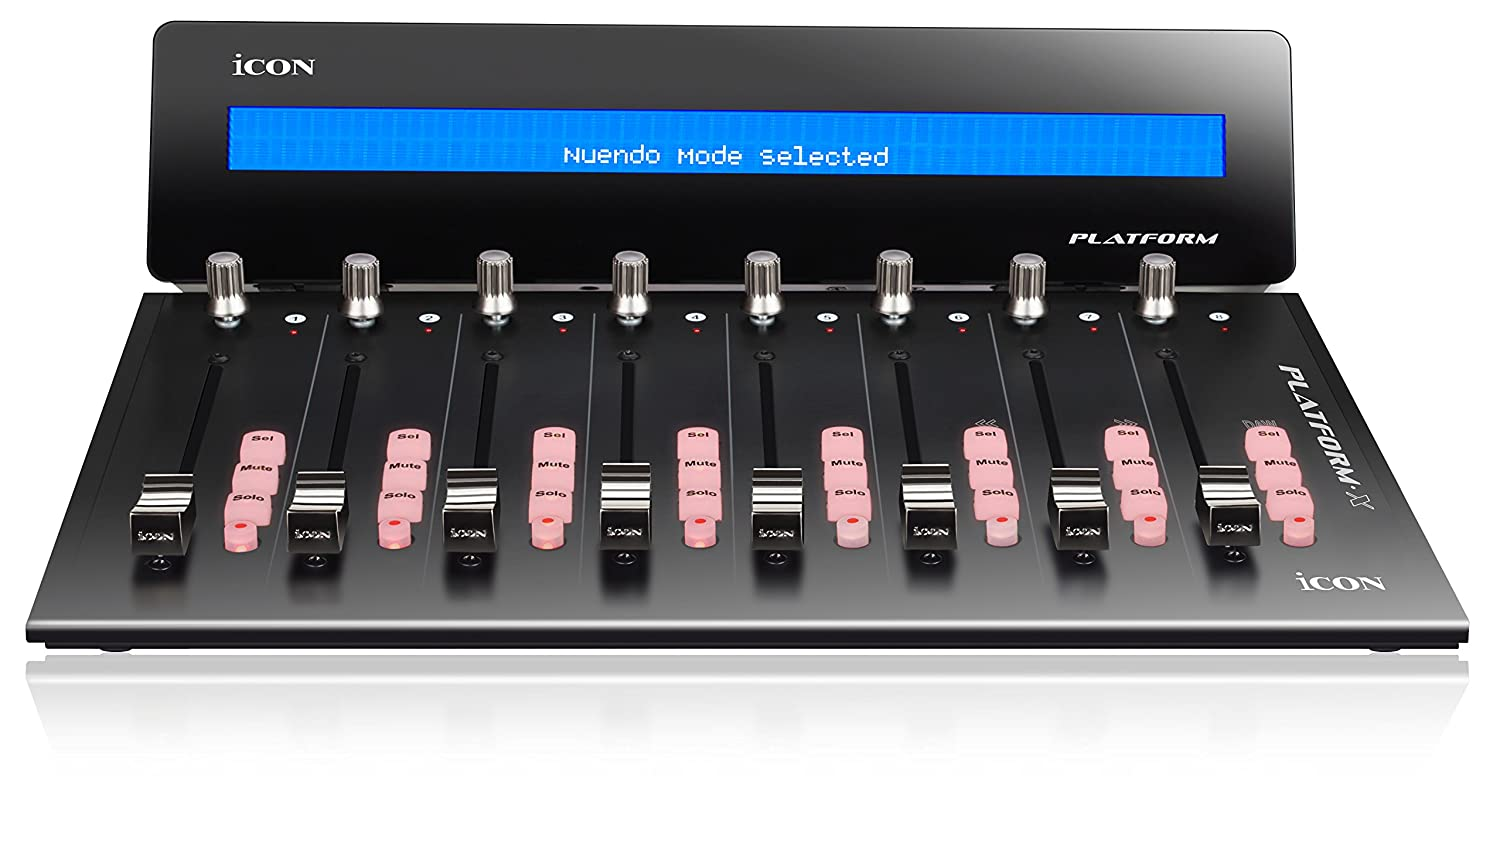 Icon Pro Audio, ICOC-PLATFORMMM+, Icon Pro Audio Platform M+ MIDI control  surface